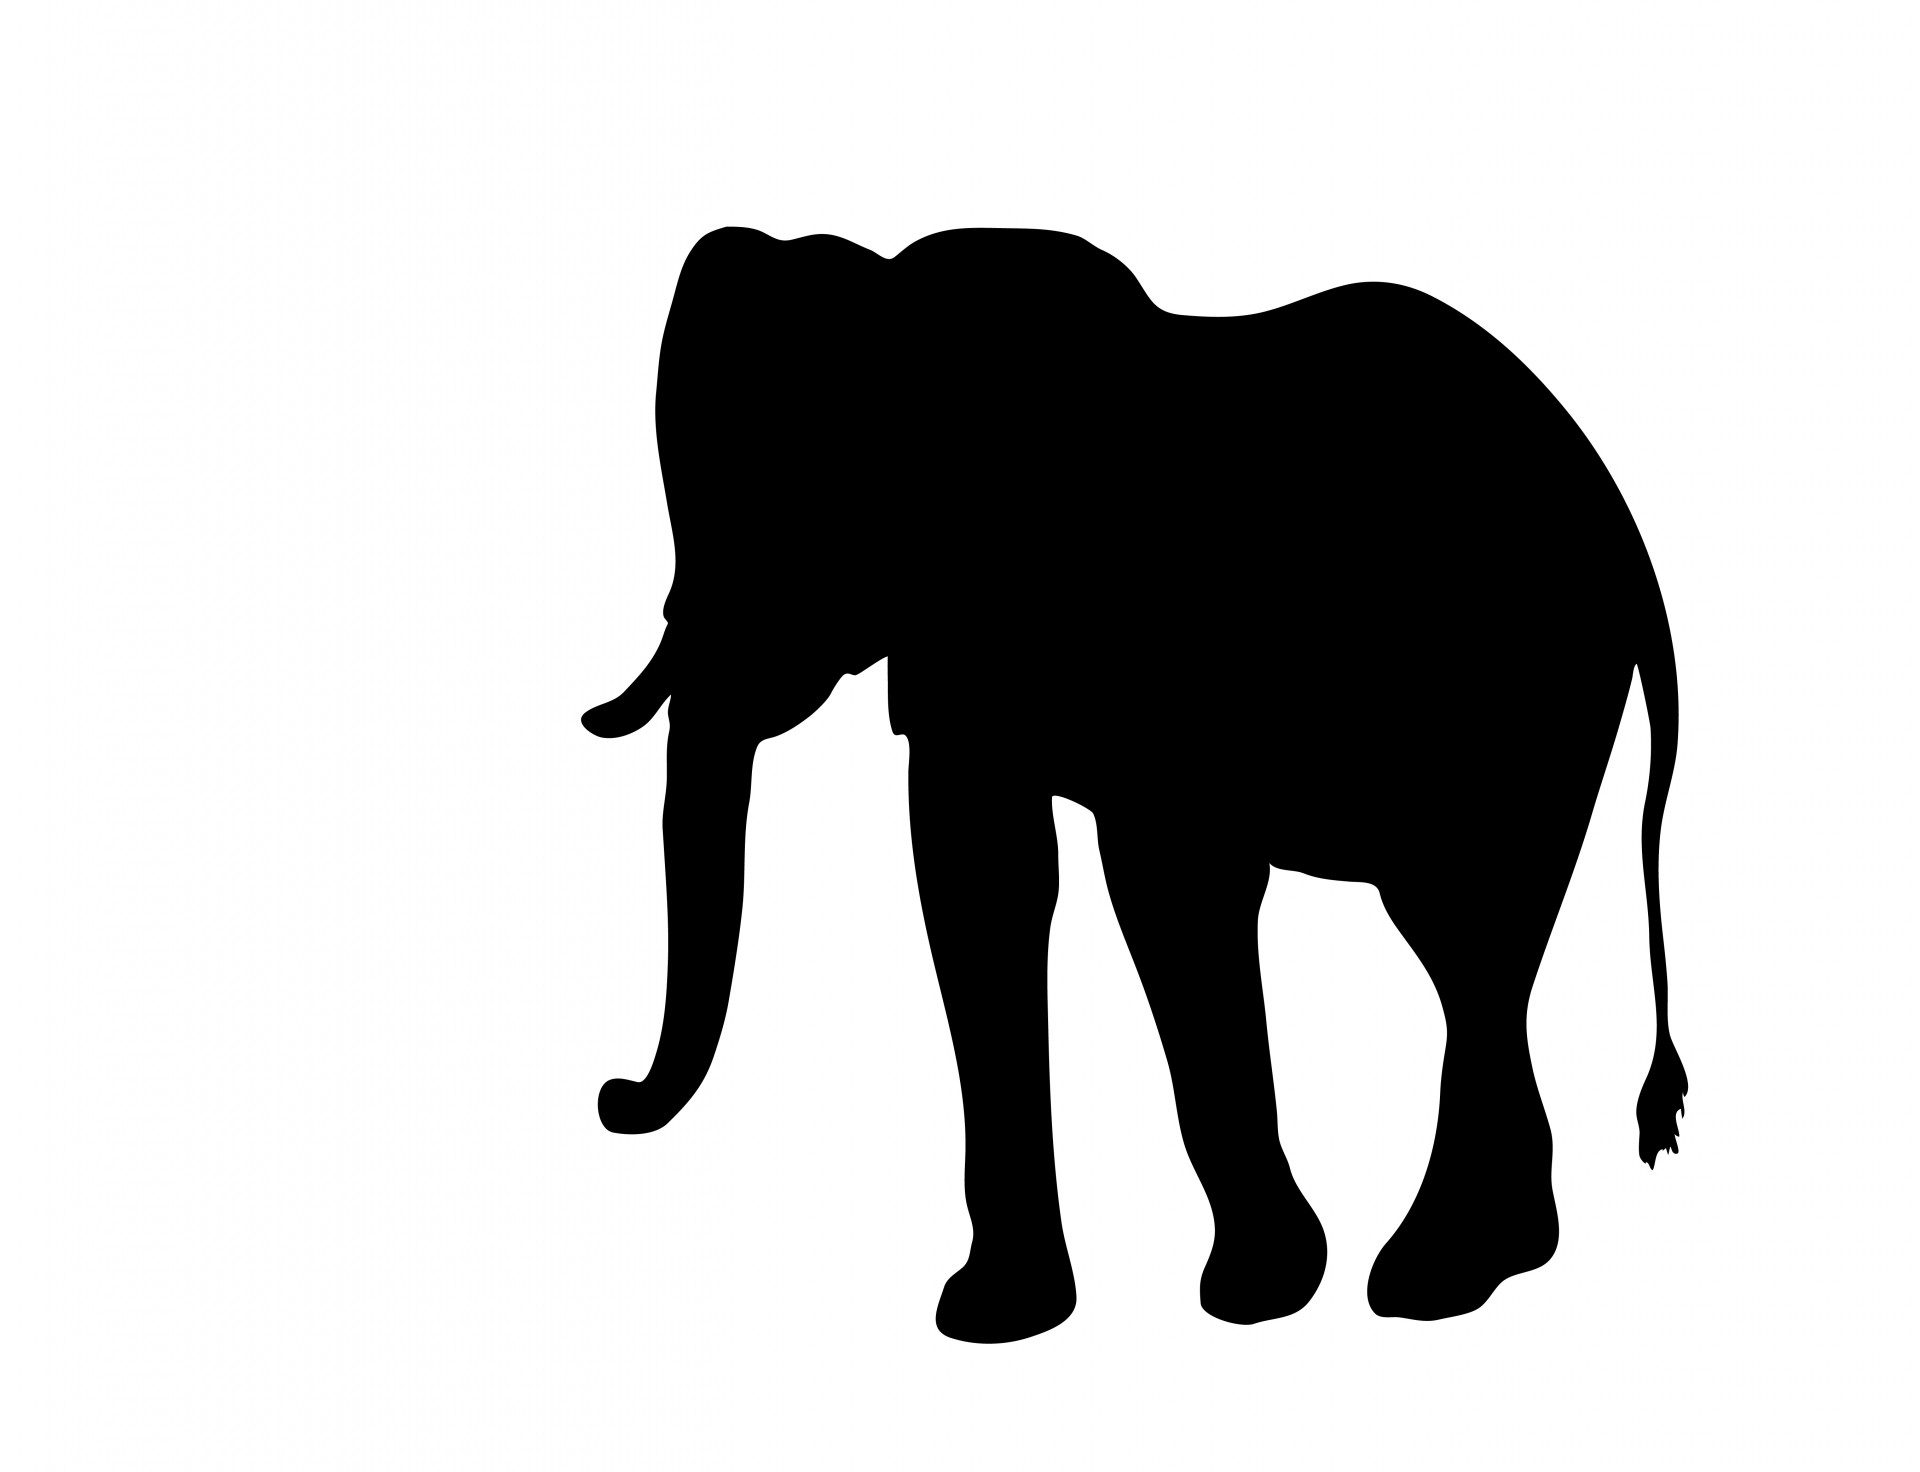 Clipart silhouette free stock. Elephant clip art elephent image free